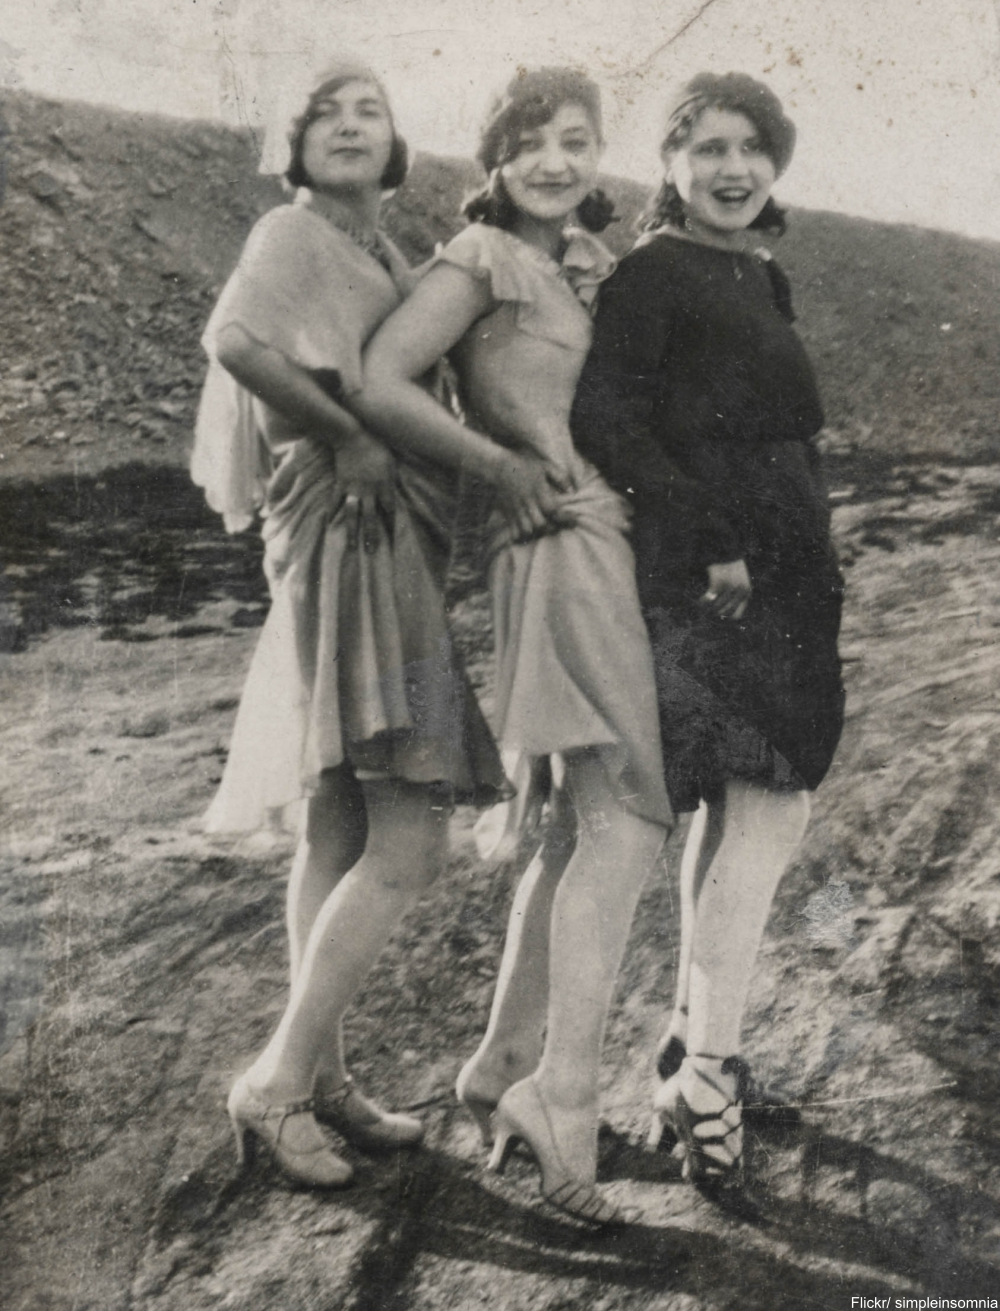 Three flappers hike their skirts